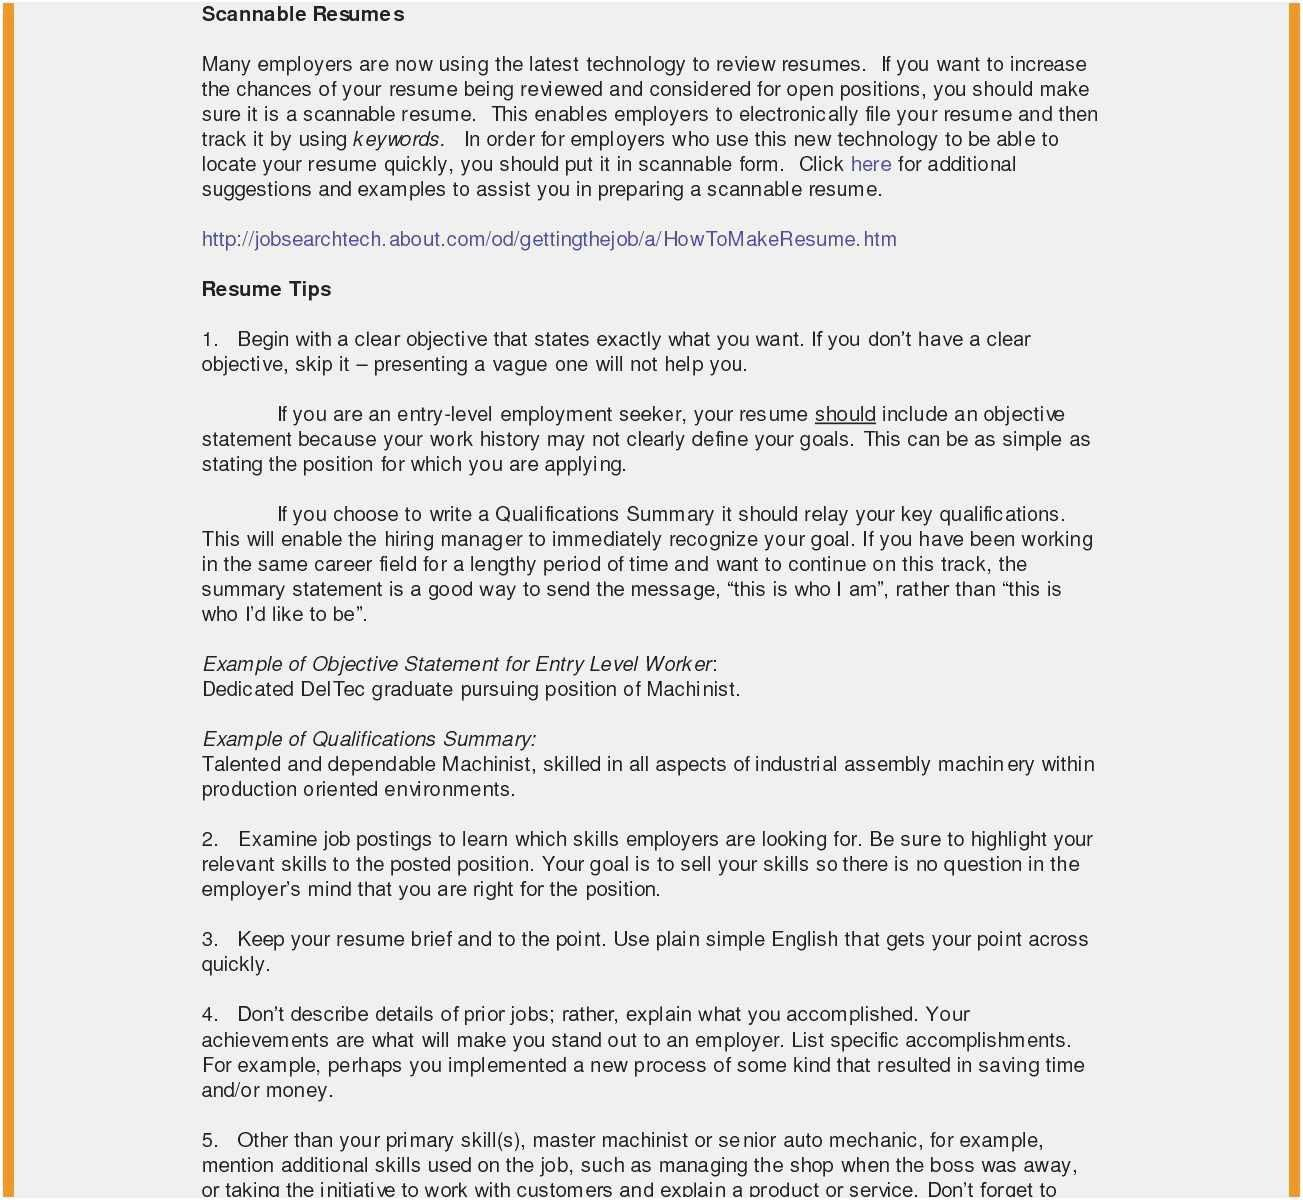 32 Lovely Additional Information On Resume in 2020 Job